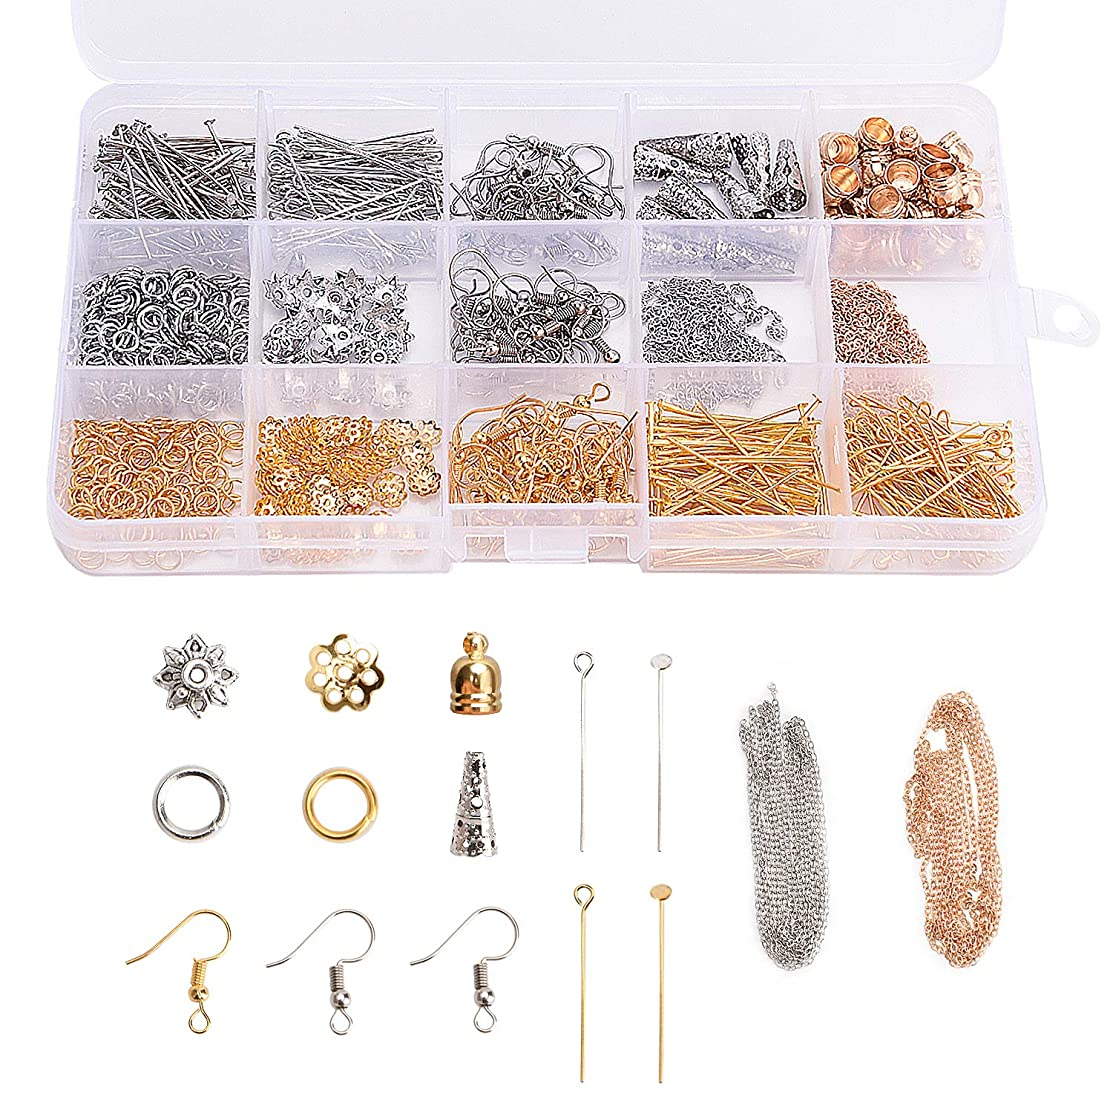 850PCS 14 Styles Jewelry Findings Components for Earrings Making, Earring Hooks, Head Pins, Eye Pins, Cones, Jump Rings, Bead Caps, Chains for Jewelry Designers DIY Handmade Crafts